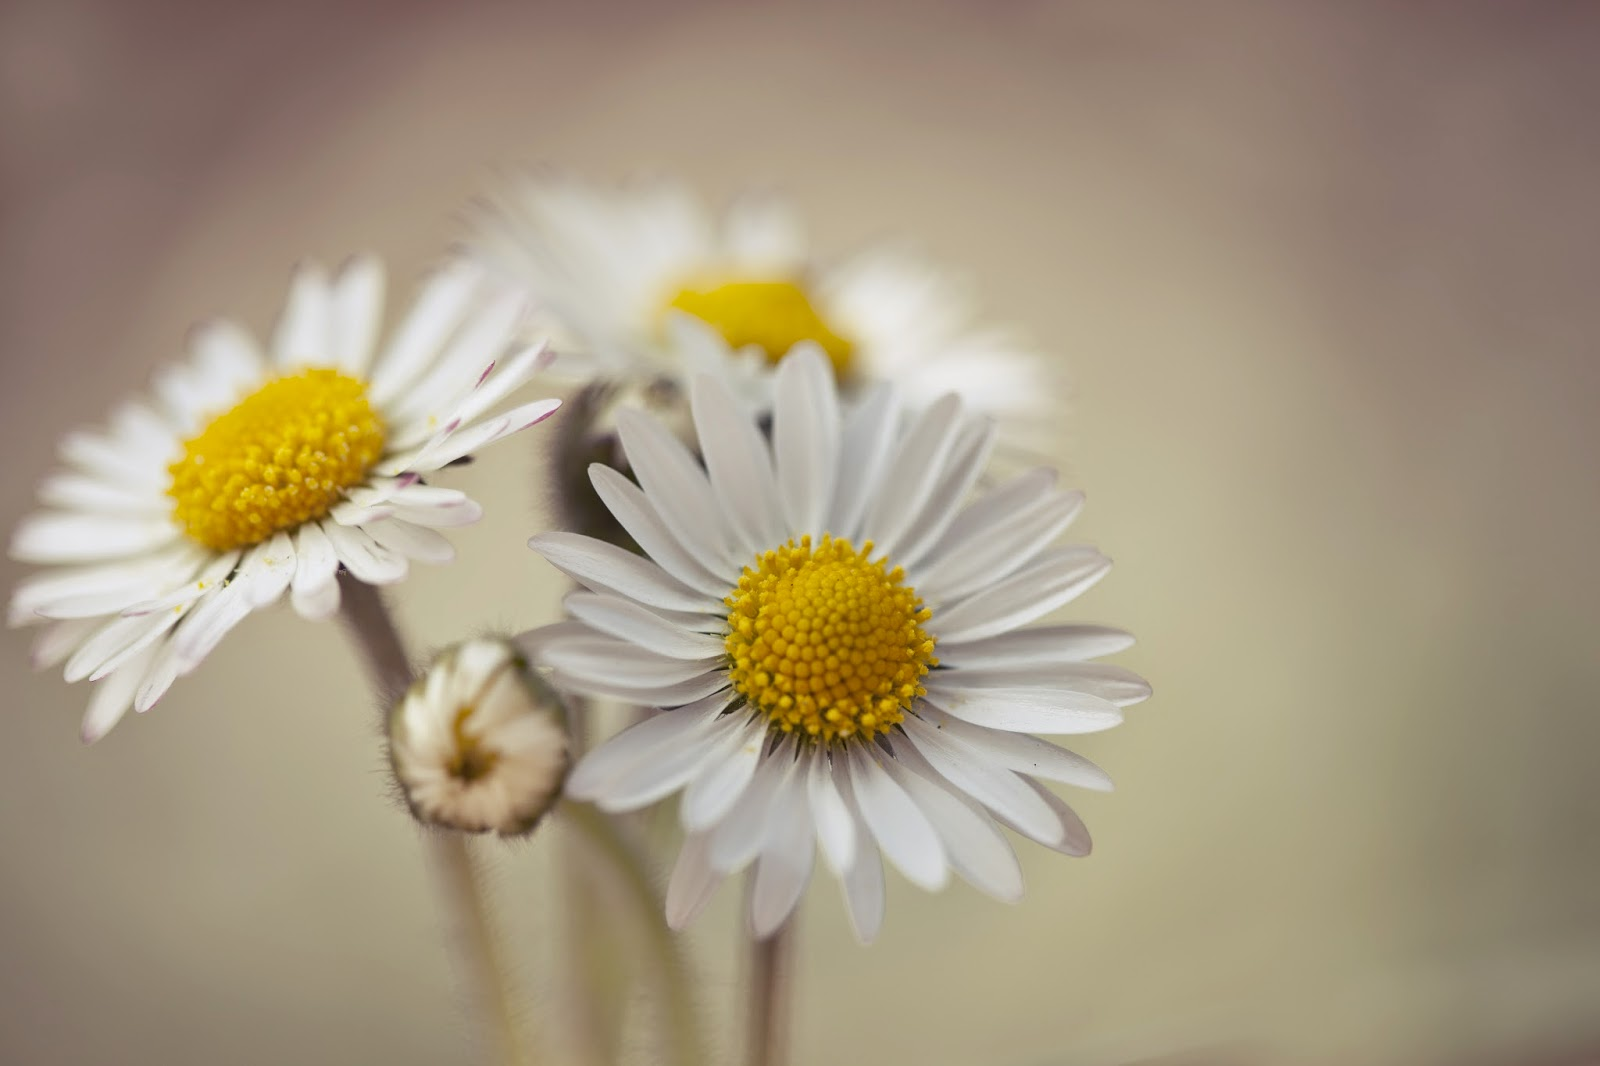 Daisy-flower-background-template-for-edit.jpg